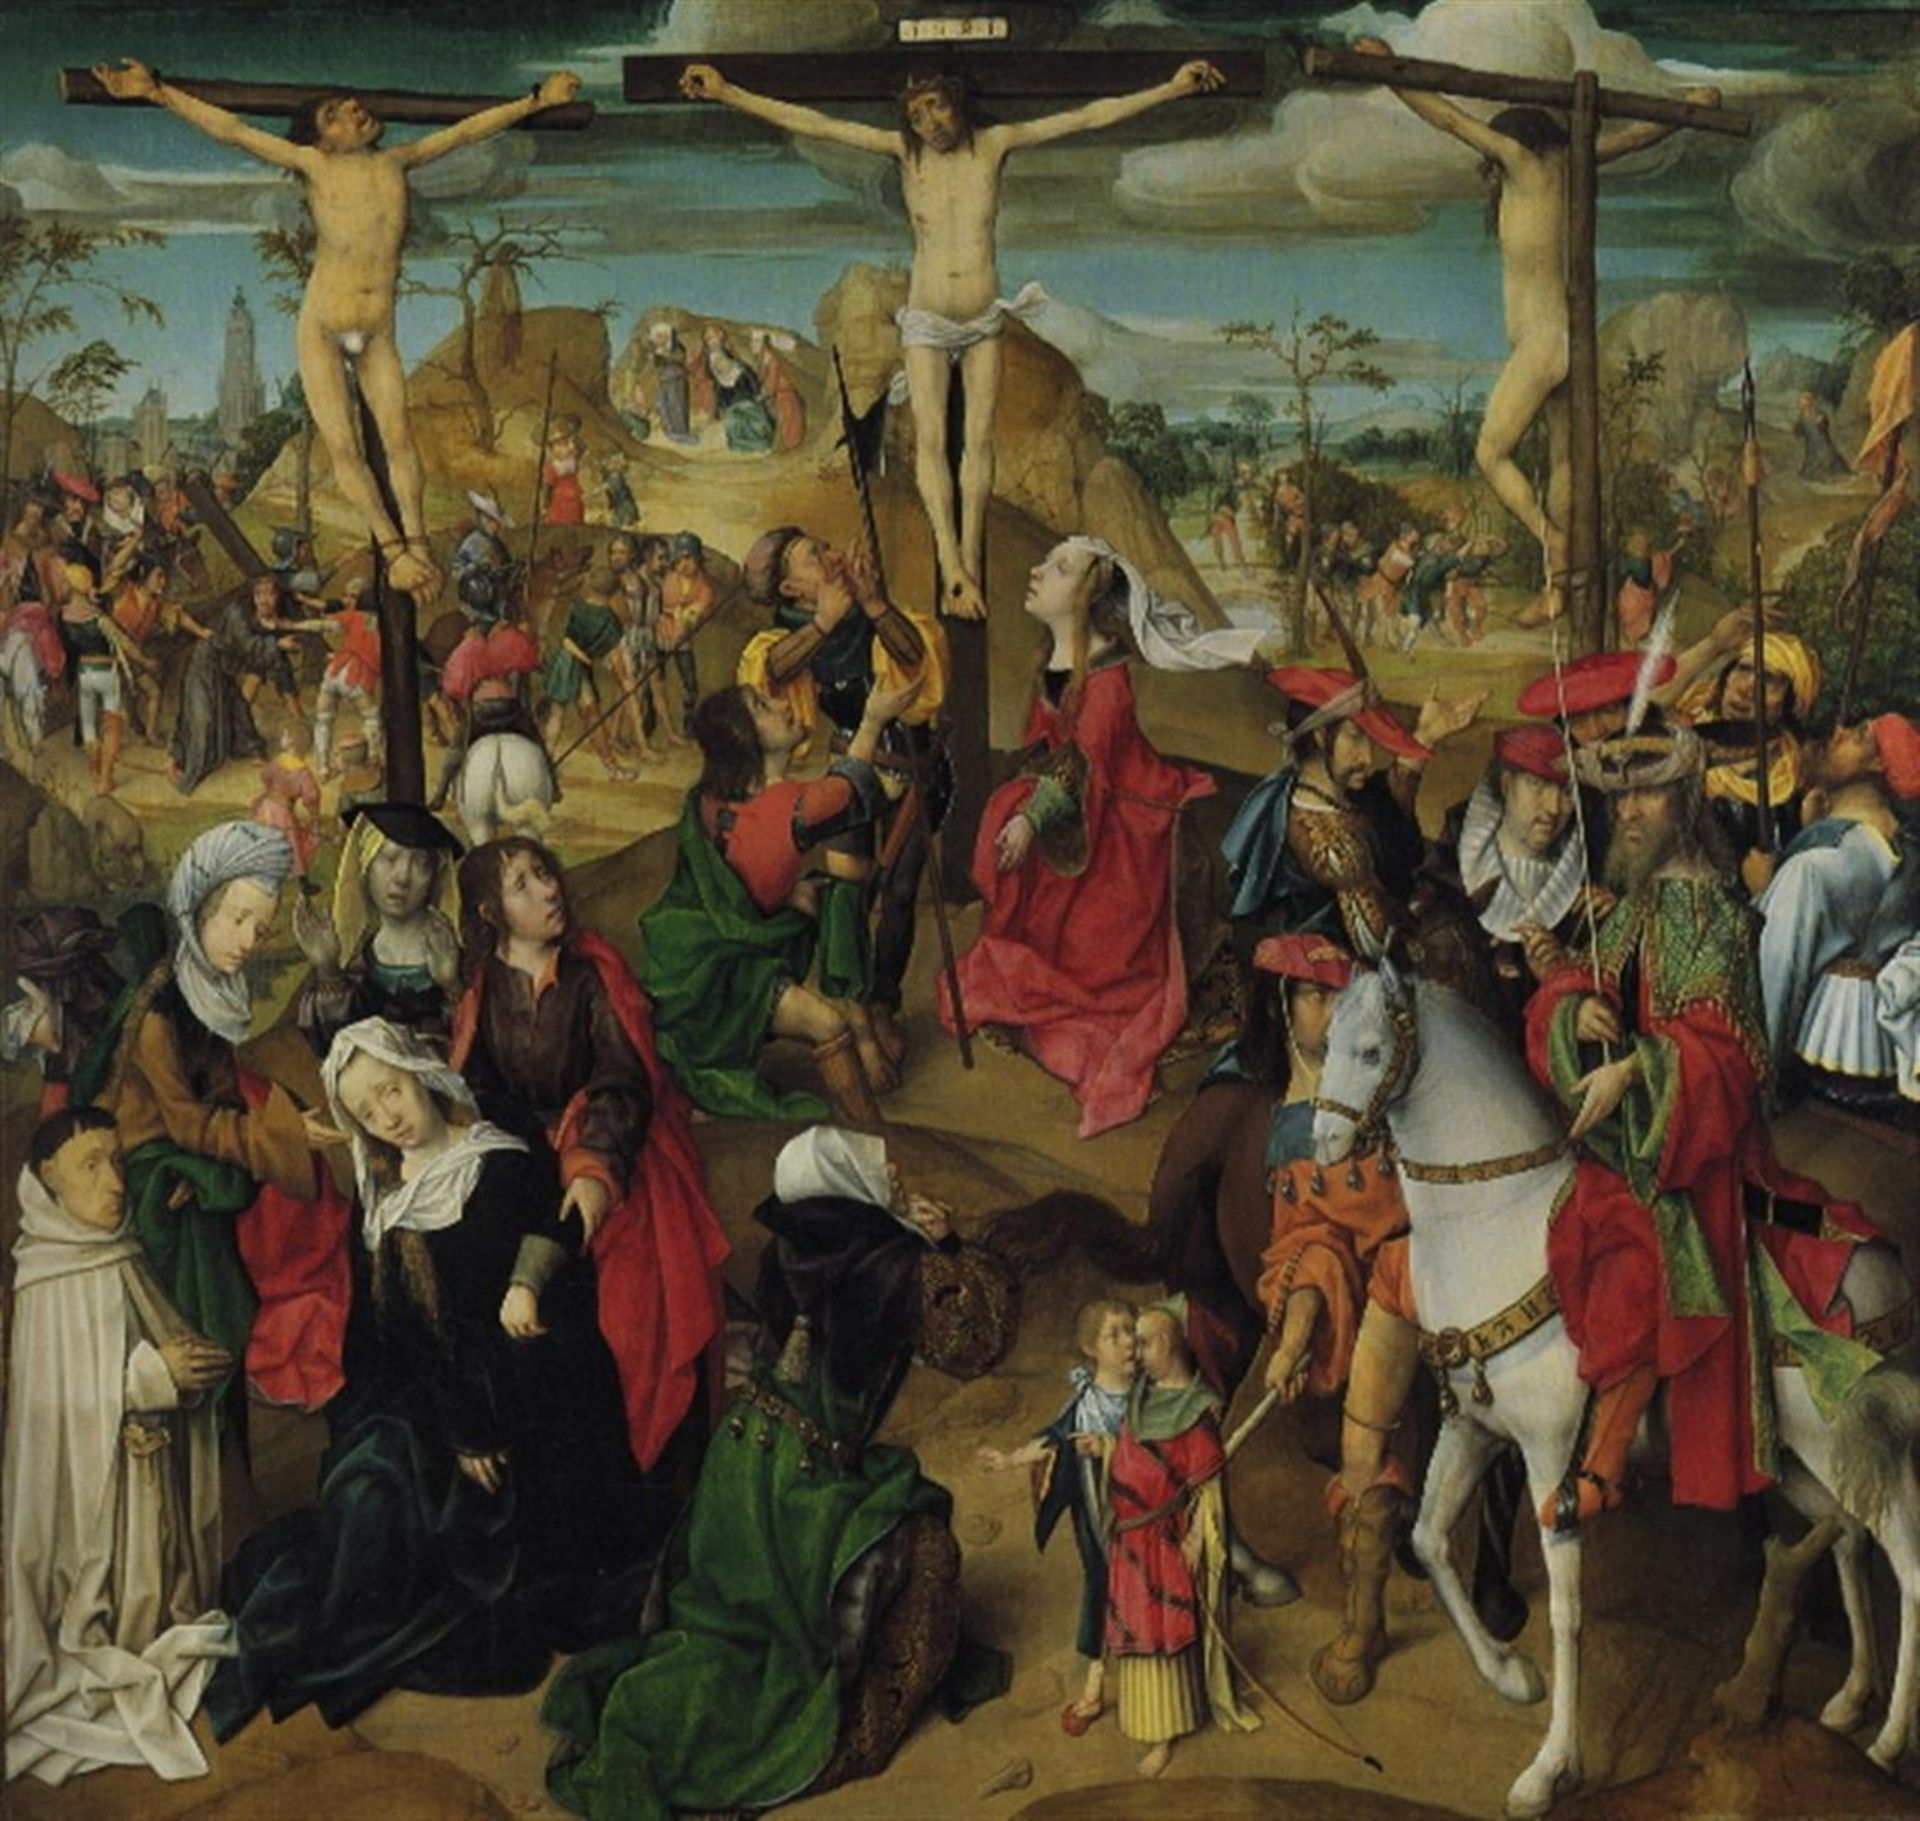 Master of Delft - Passion of Christ [2]